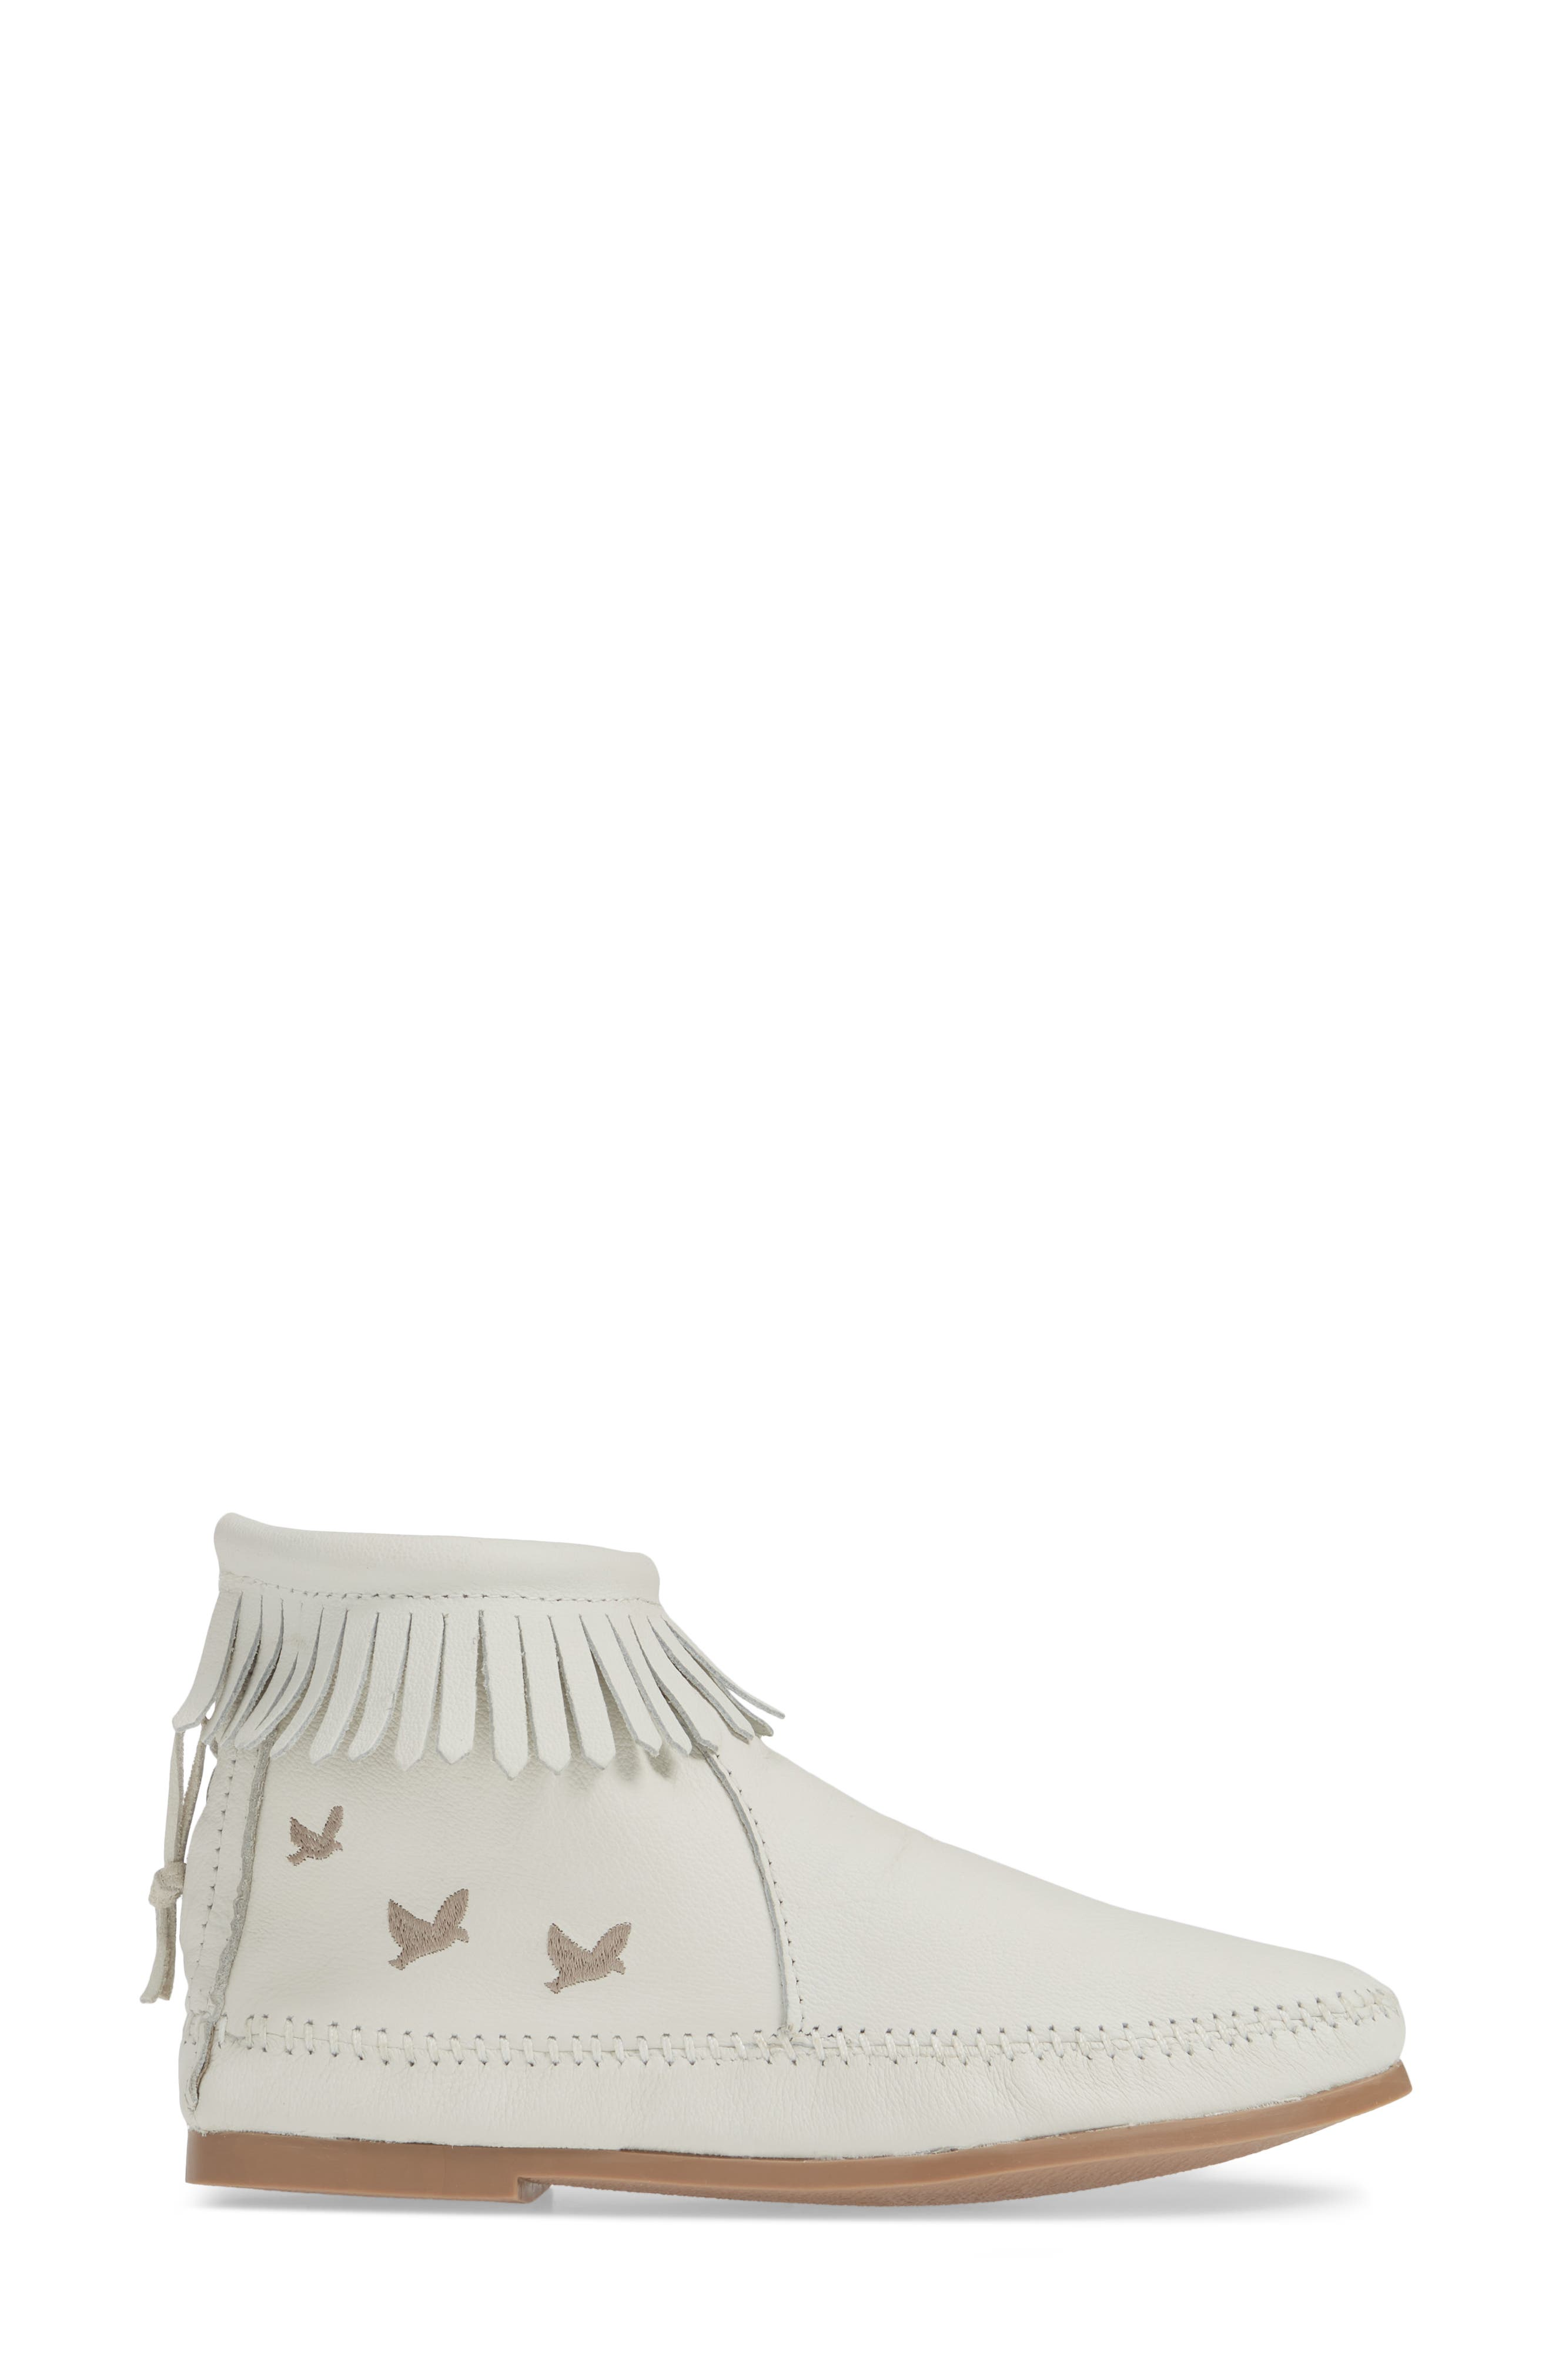 MINNETONKA, x Lottie Moss Lauryn Fringe Bootie, Alternate thumbnail 3, color, WHITE LEATHER